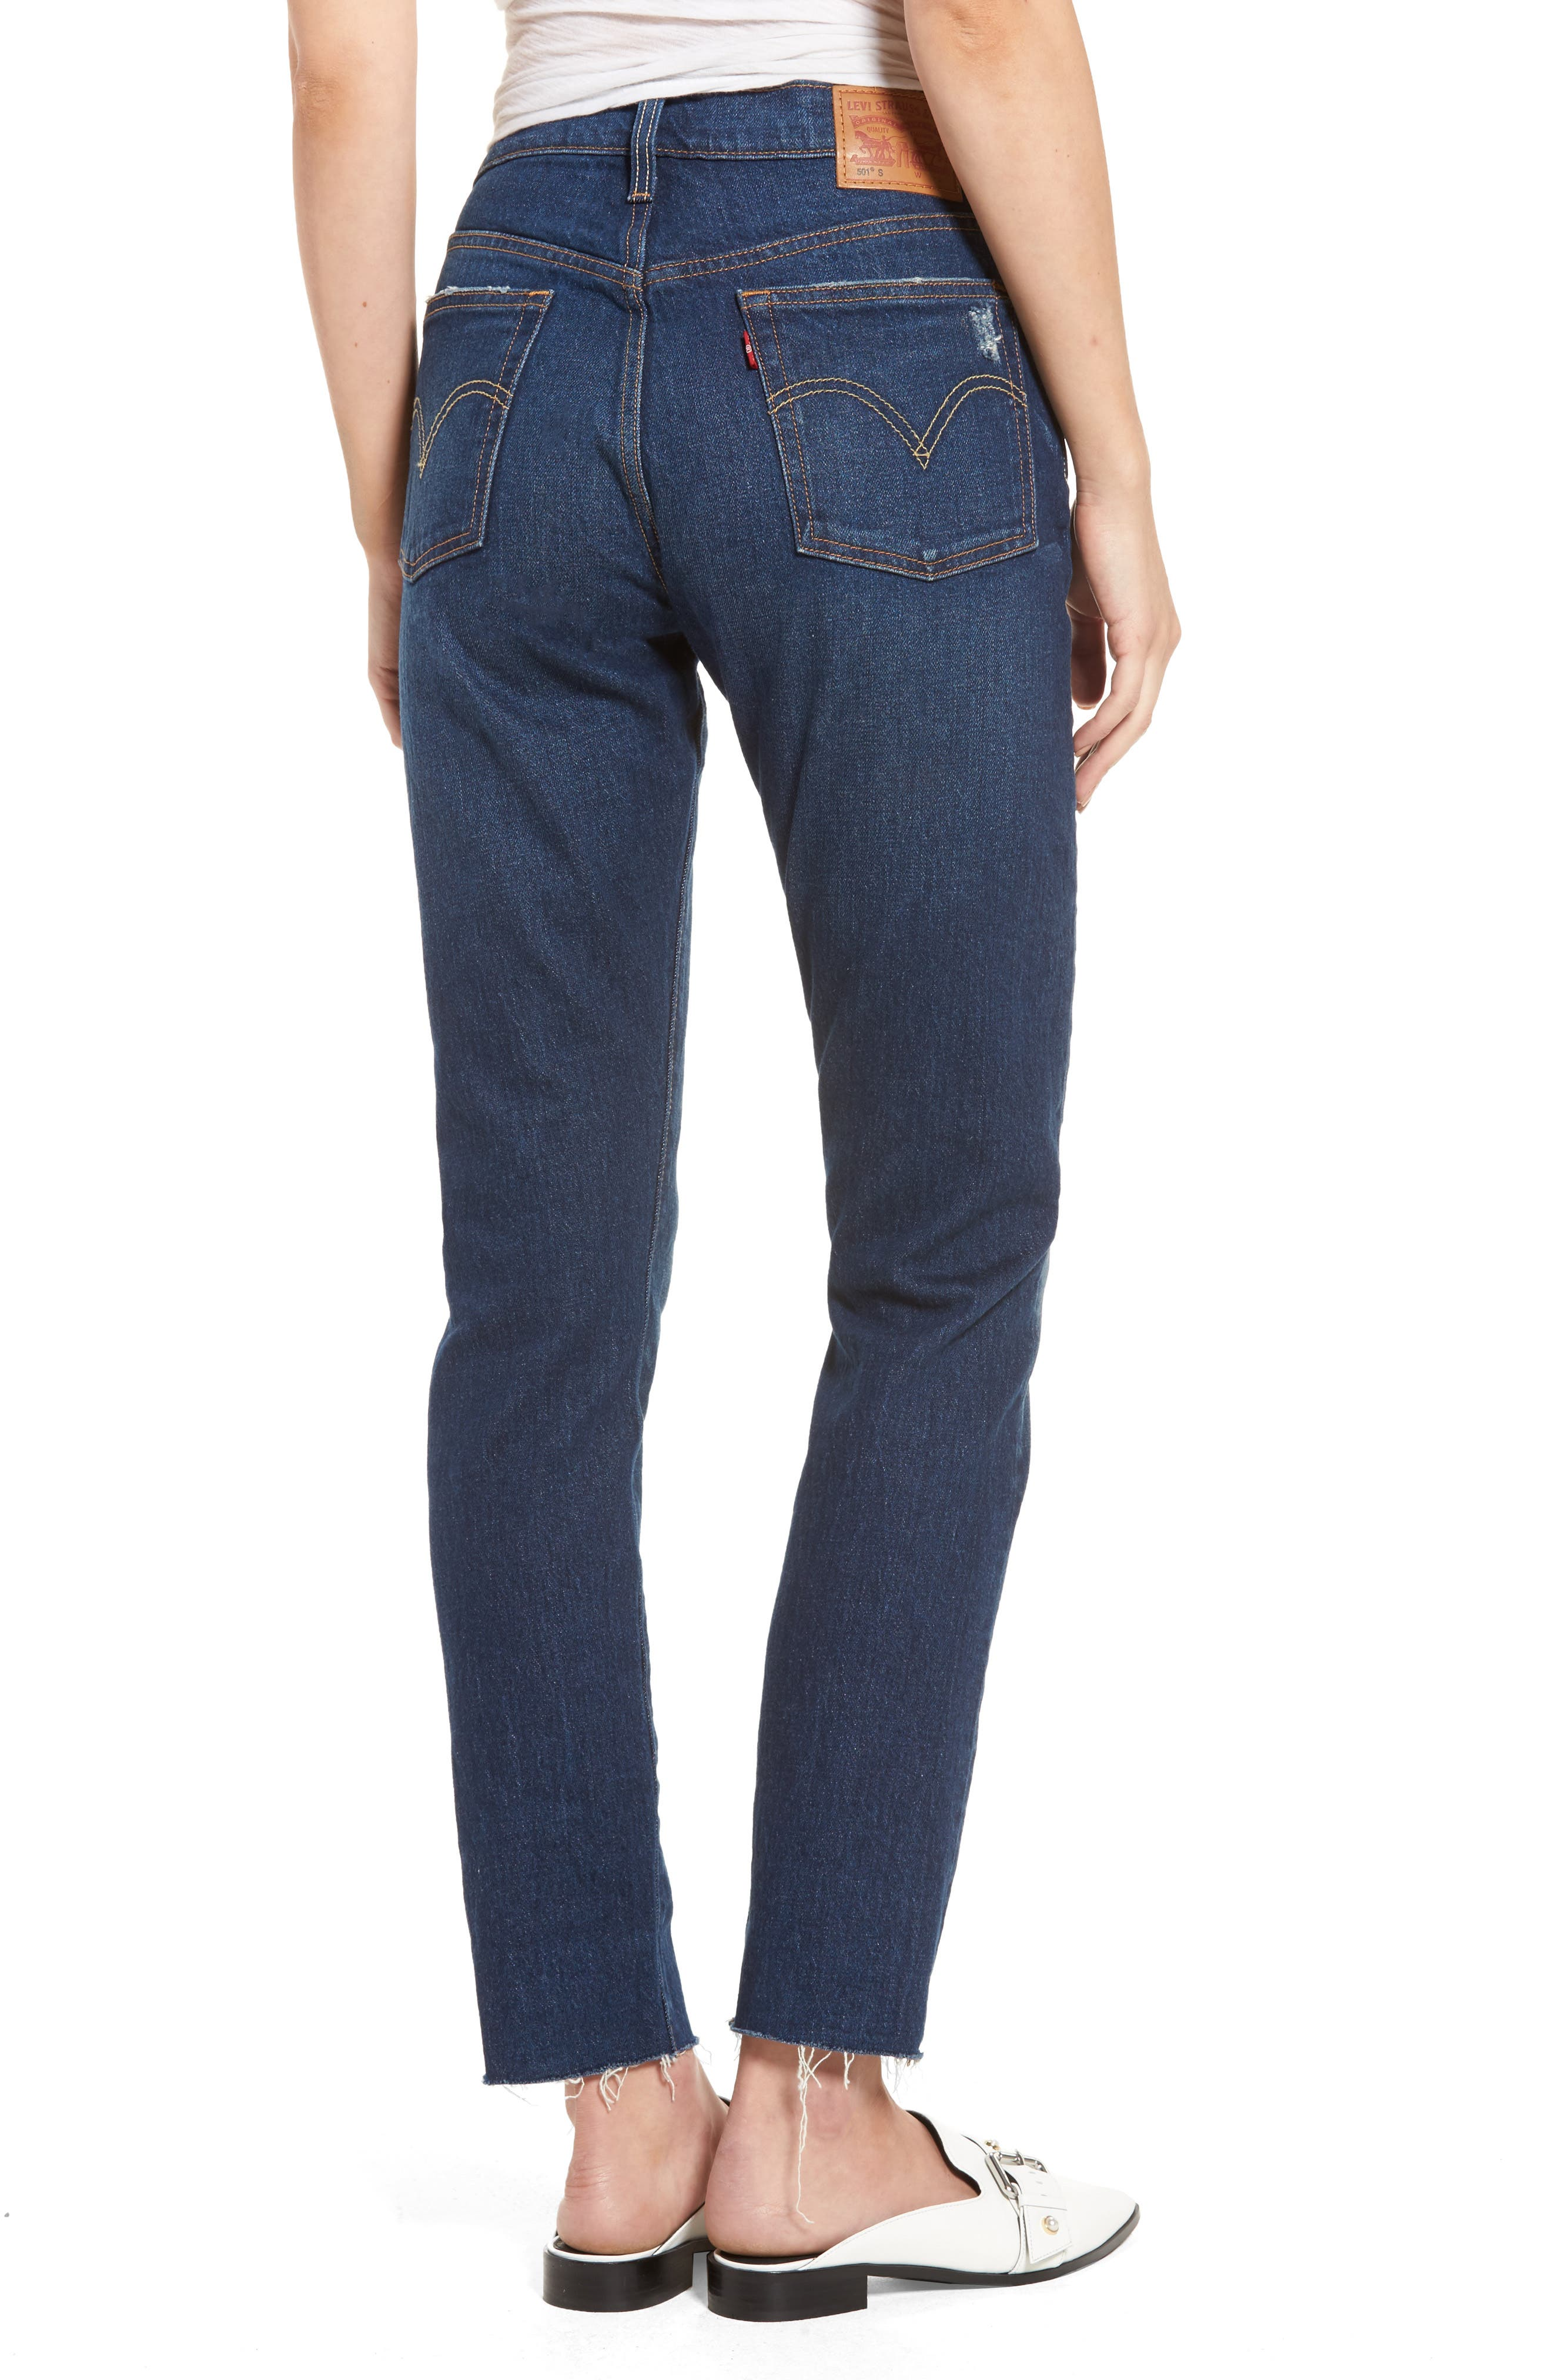 Levis<sup>®</sup> 501 Raw Hem Skinny Jeans,                             Alternate thumbnail 2, color,